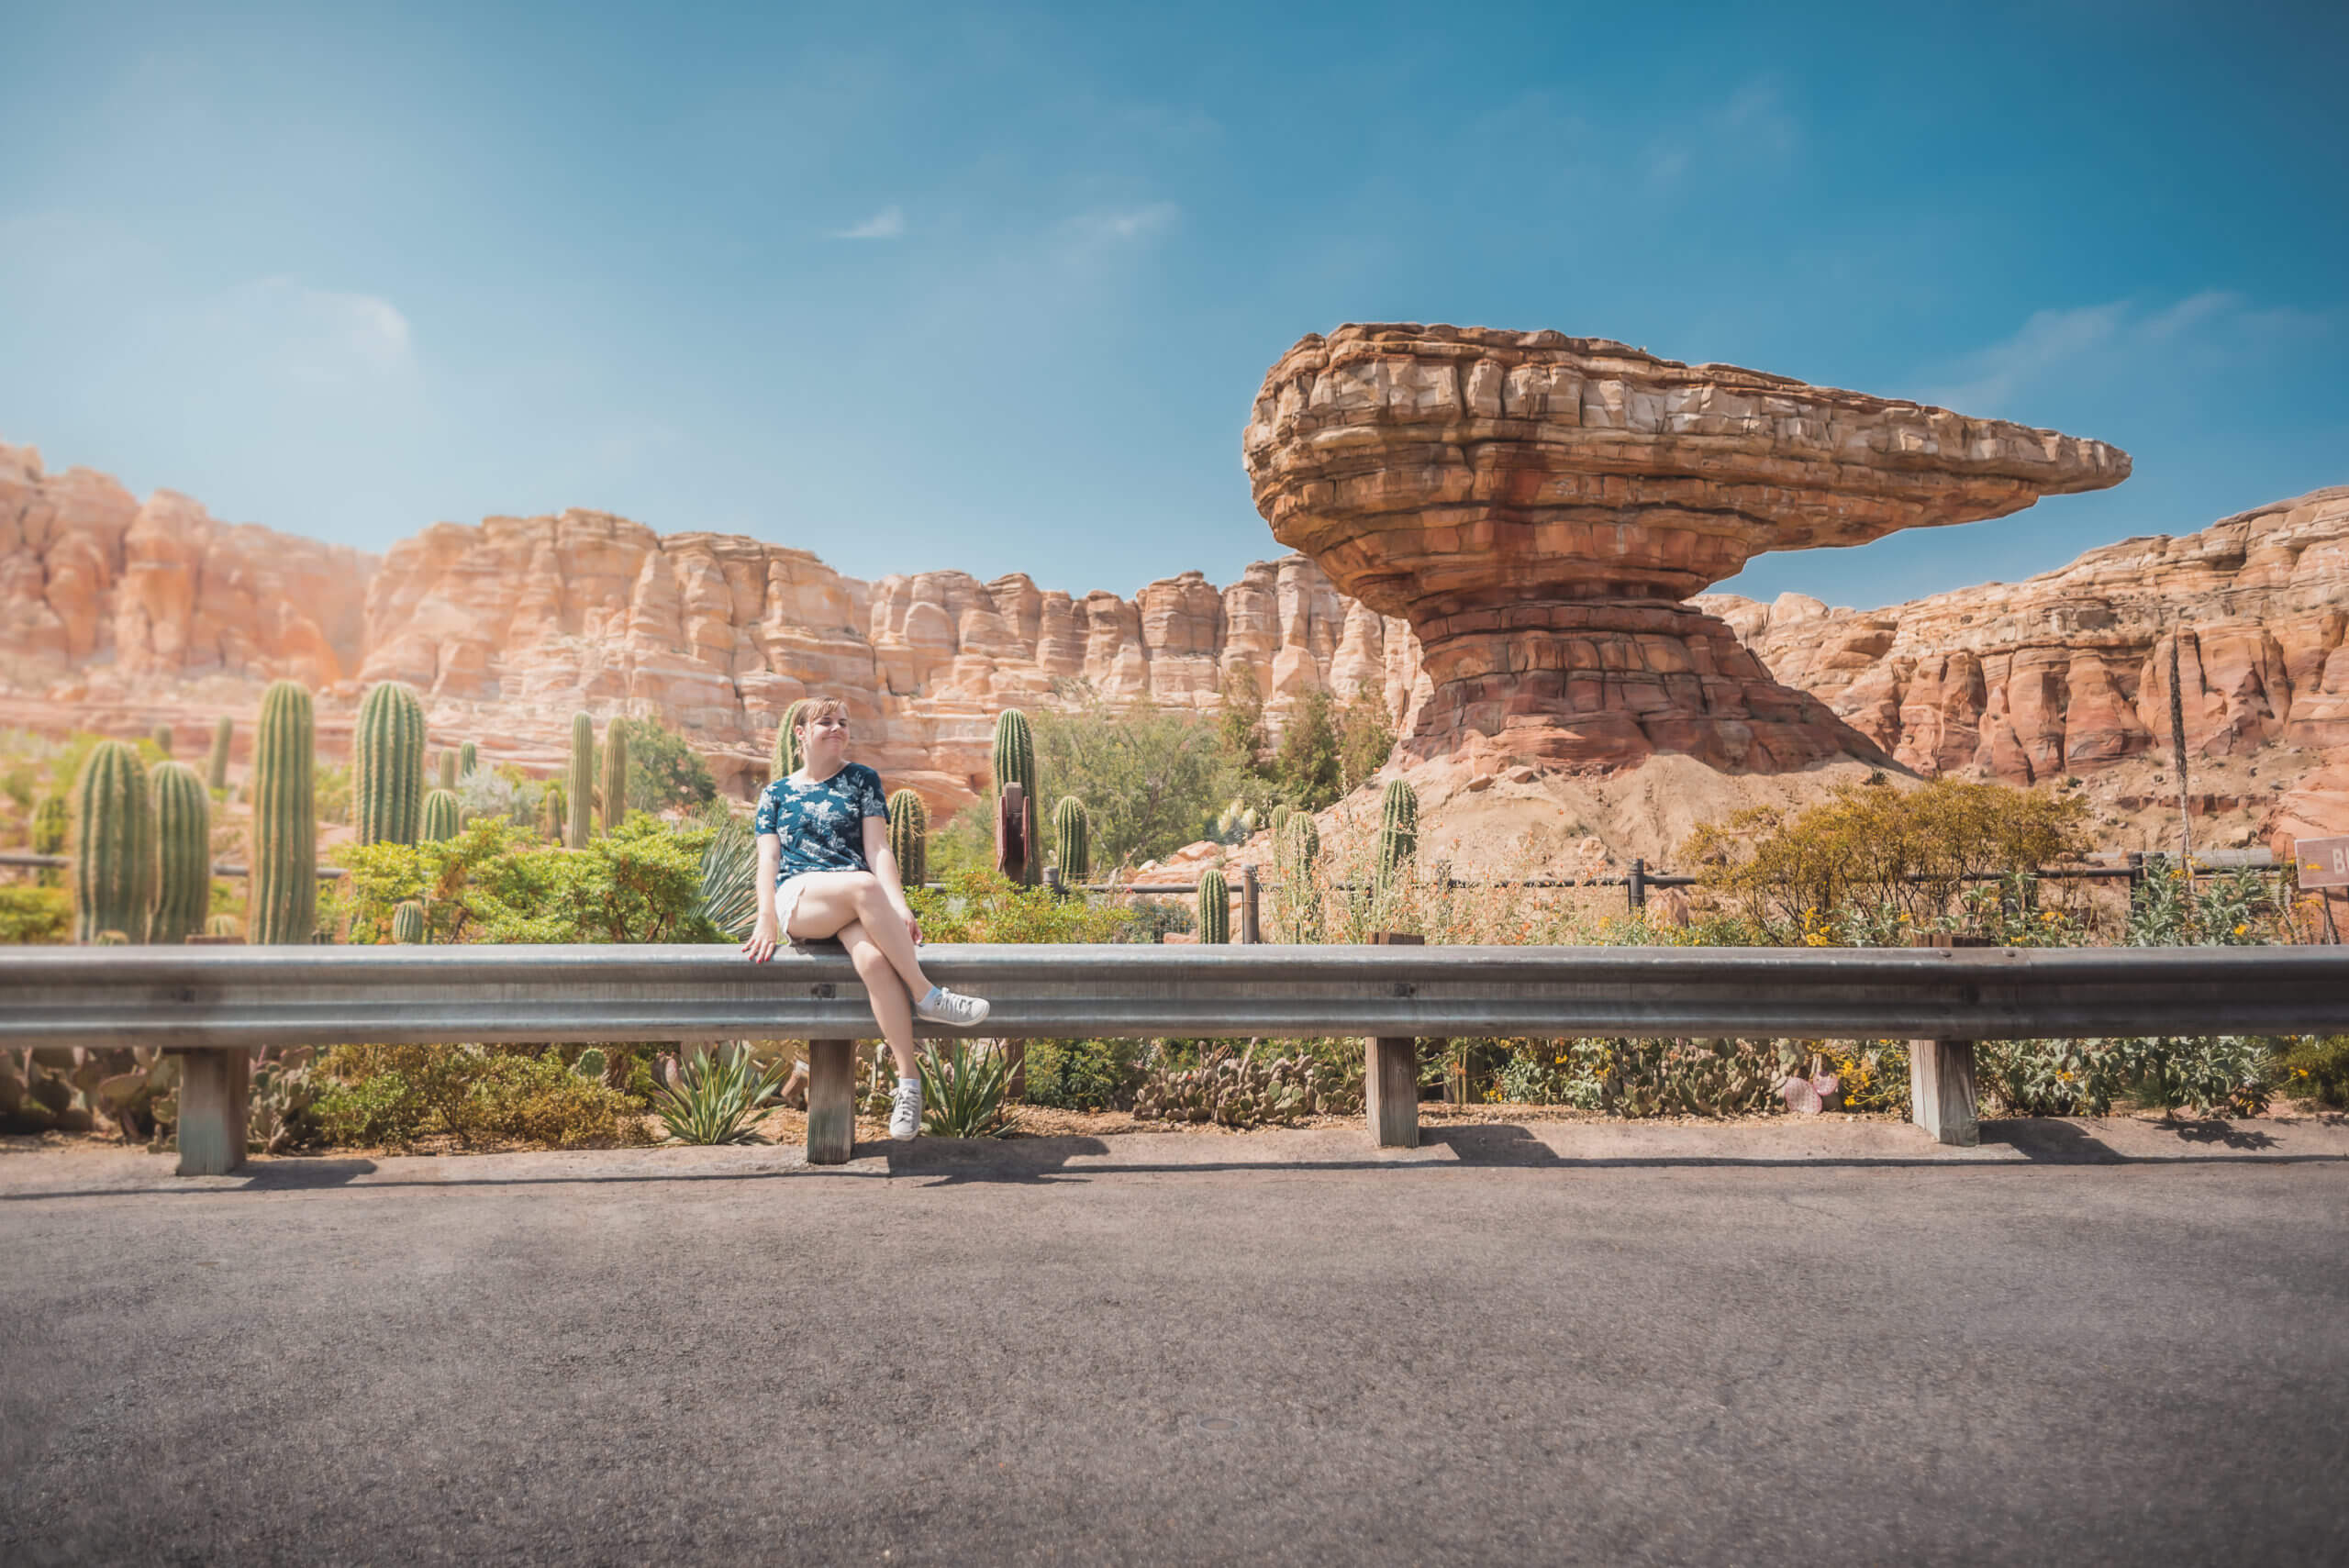 Radiator Springs Racers in Cars Land at California Adventure on a sunny day